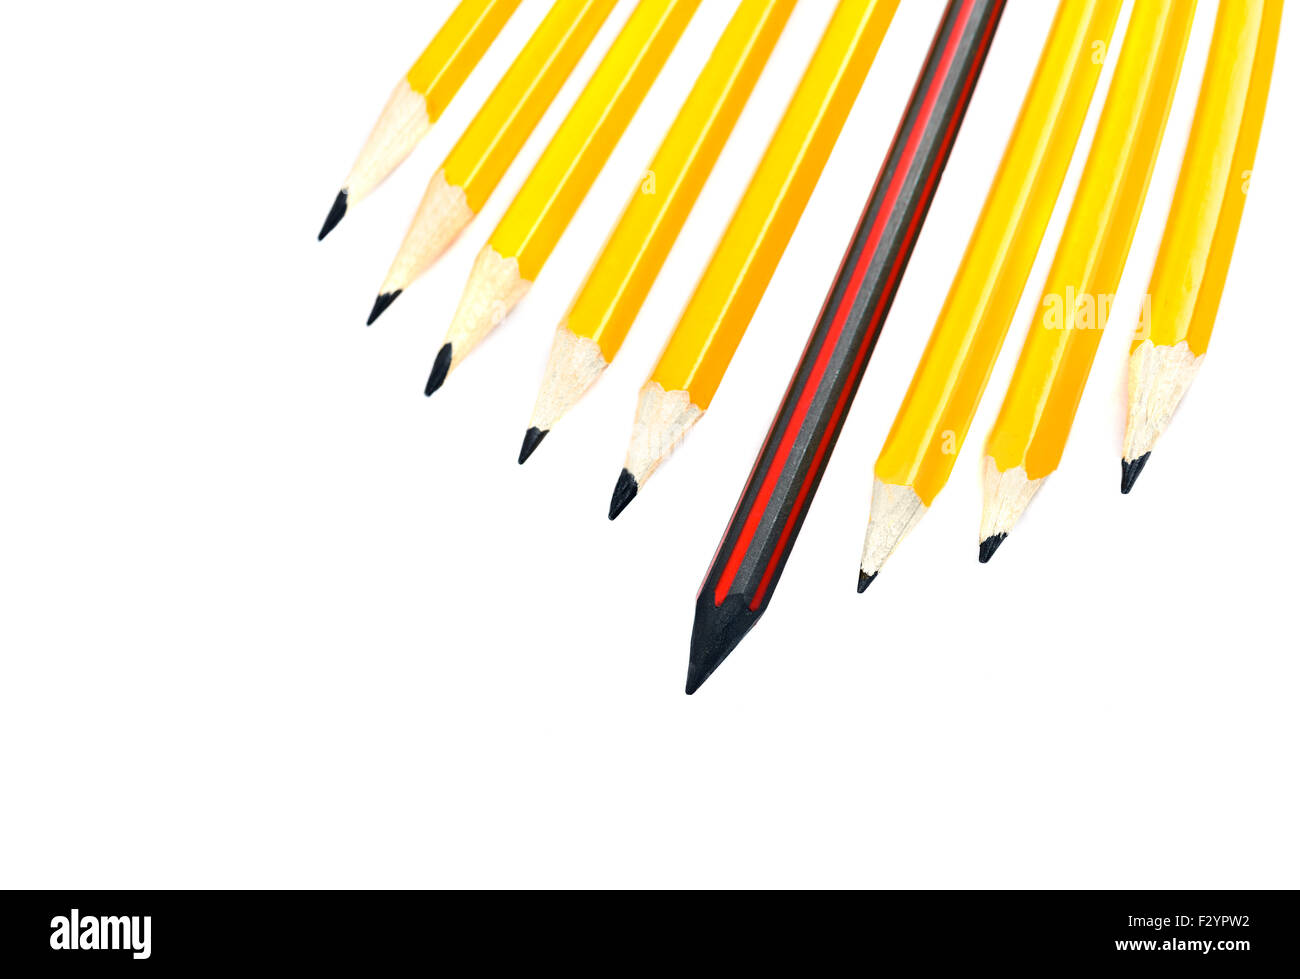 pencil standing out from a bunch of crowd pencils, leadership concept - Stock Image